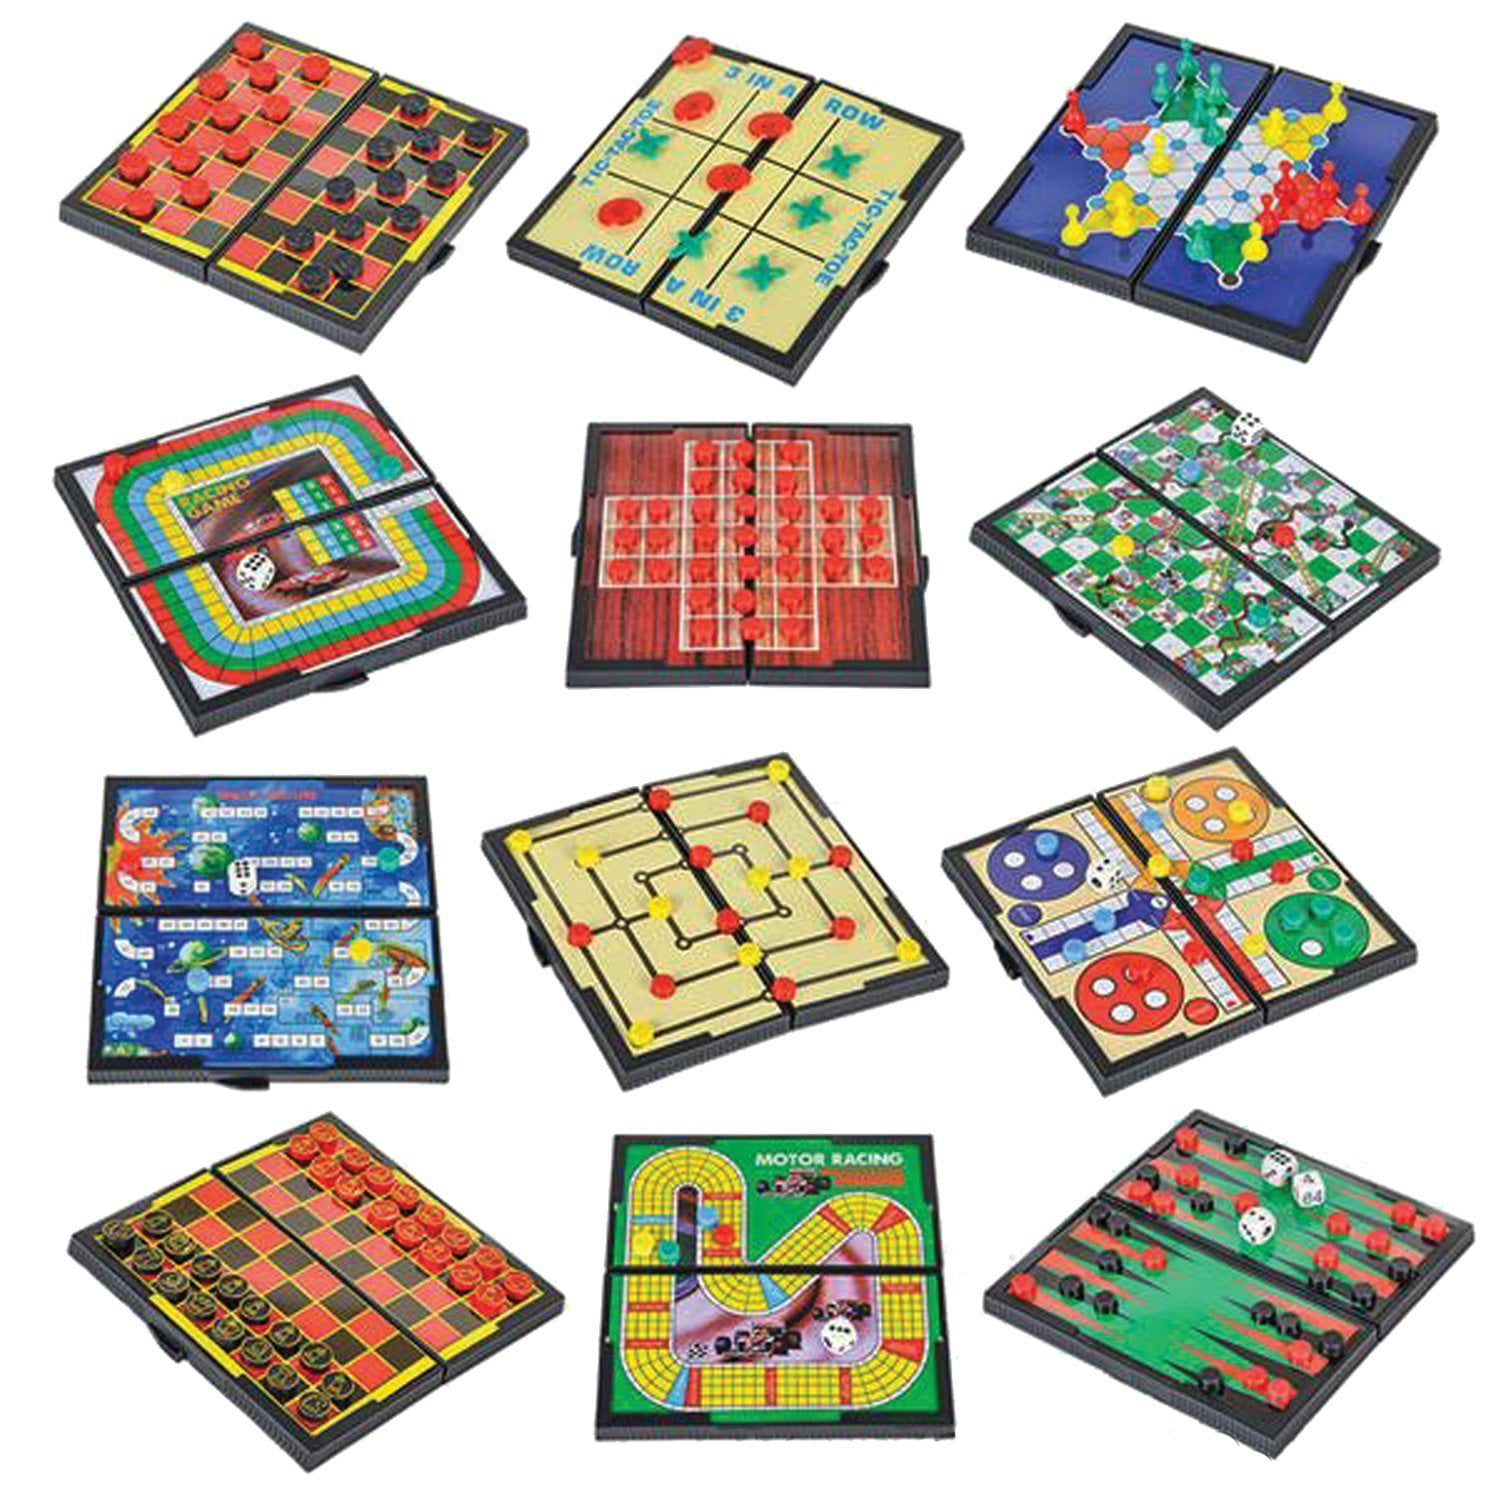 12 Magnetic Travel Board Games-Road Trip Entertainment, Checkers, Chess, Chinese Checkers, Tic Tac Toe,... by